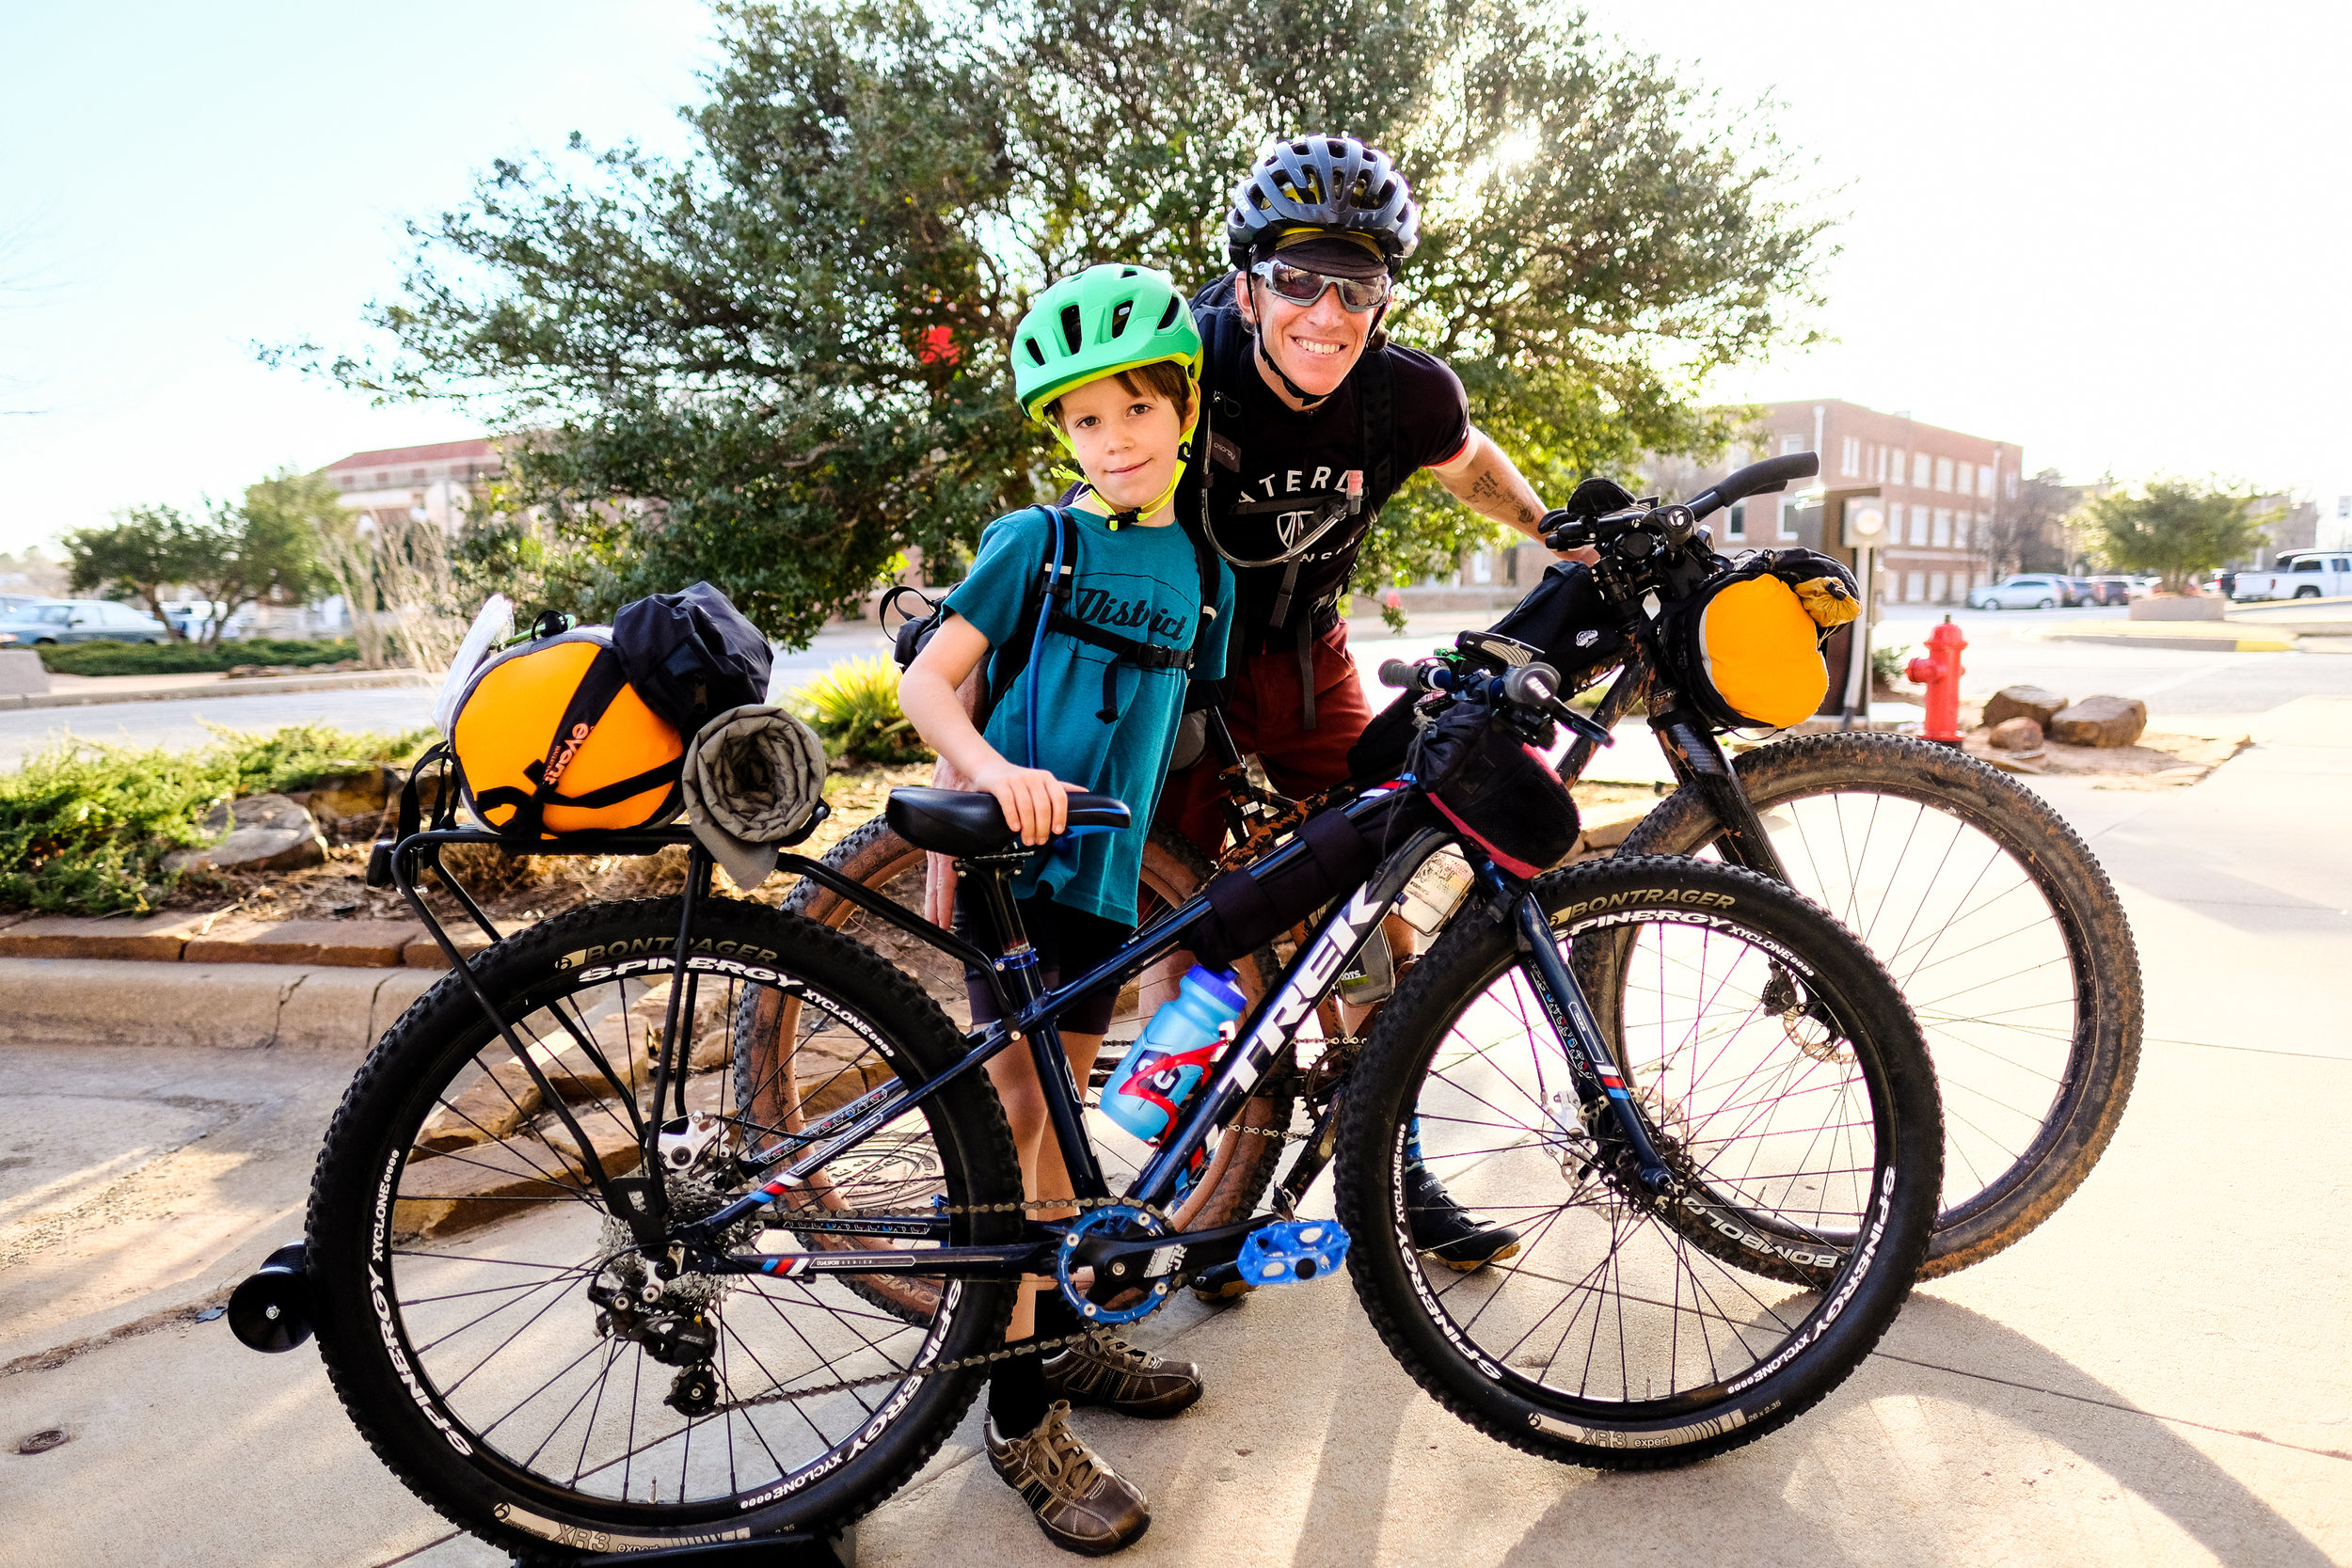 Kids can bikepack too! Seth Wood and his son Mark headed out for an overnighter. Check out Mark's bivouac setup!